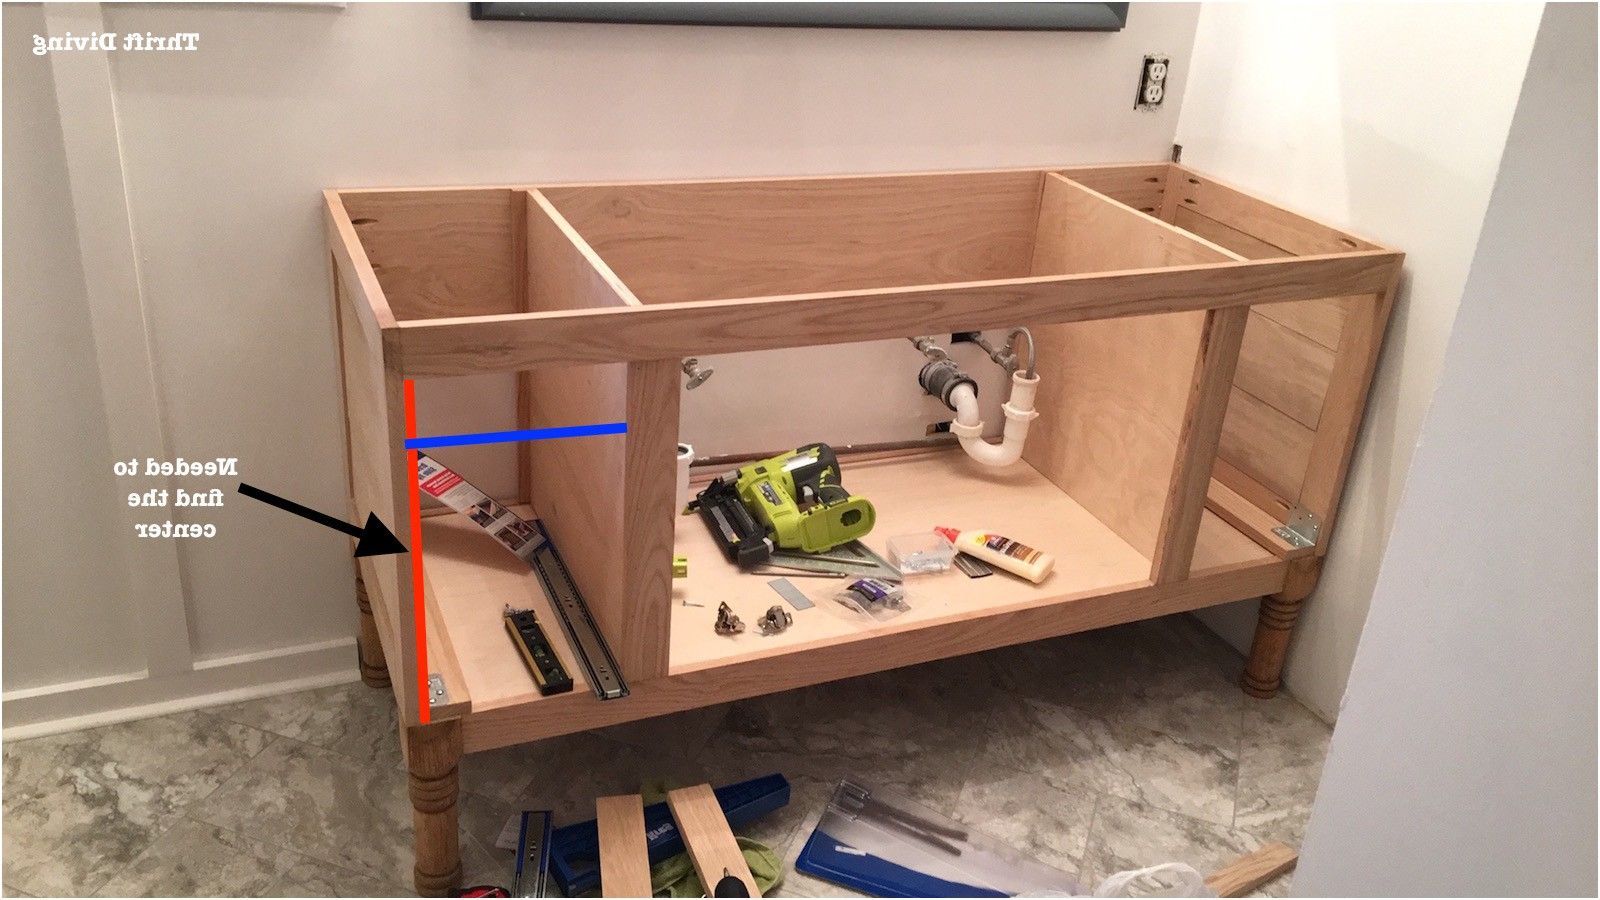 Build A Diy Bathroom Vanity Part 4 Making The Drawers From Build Bathroom  Cabinets